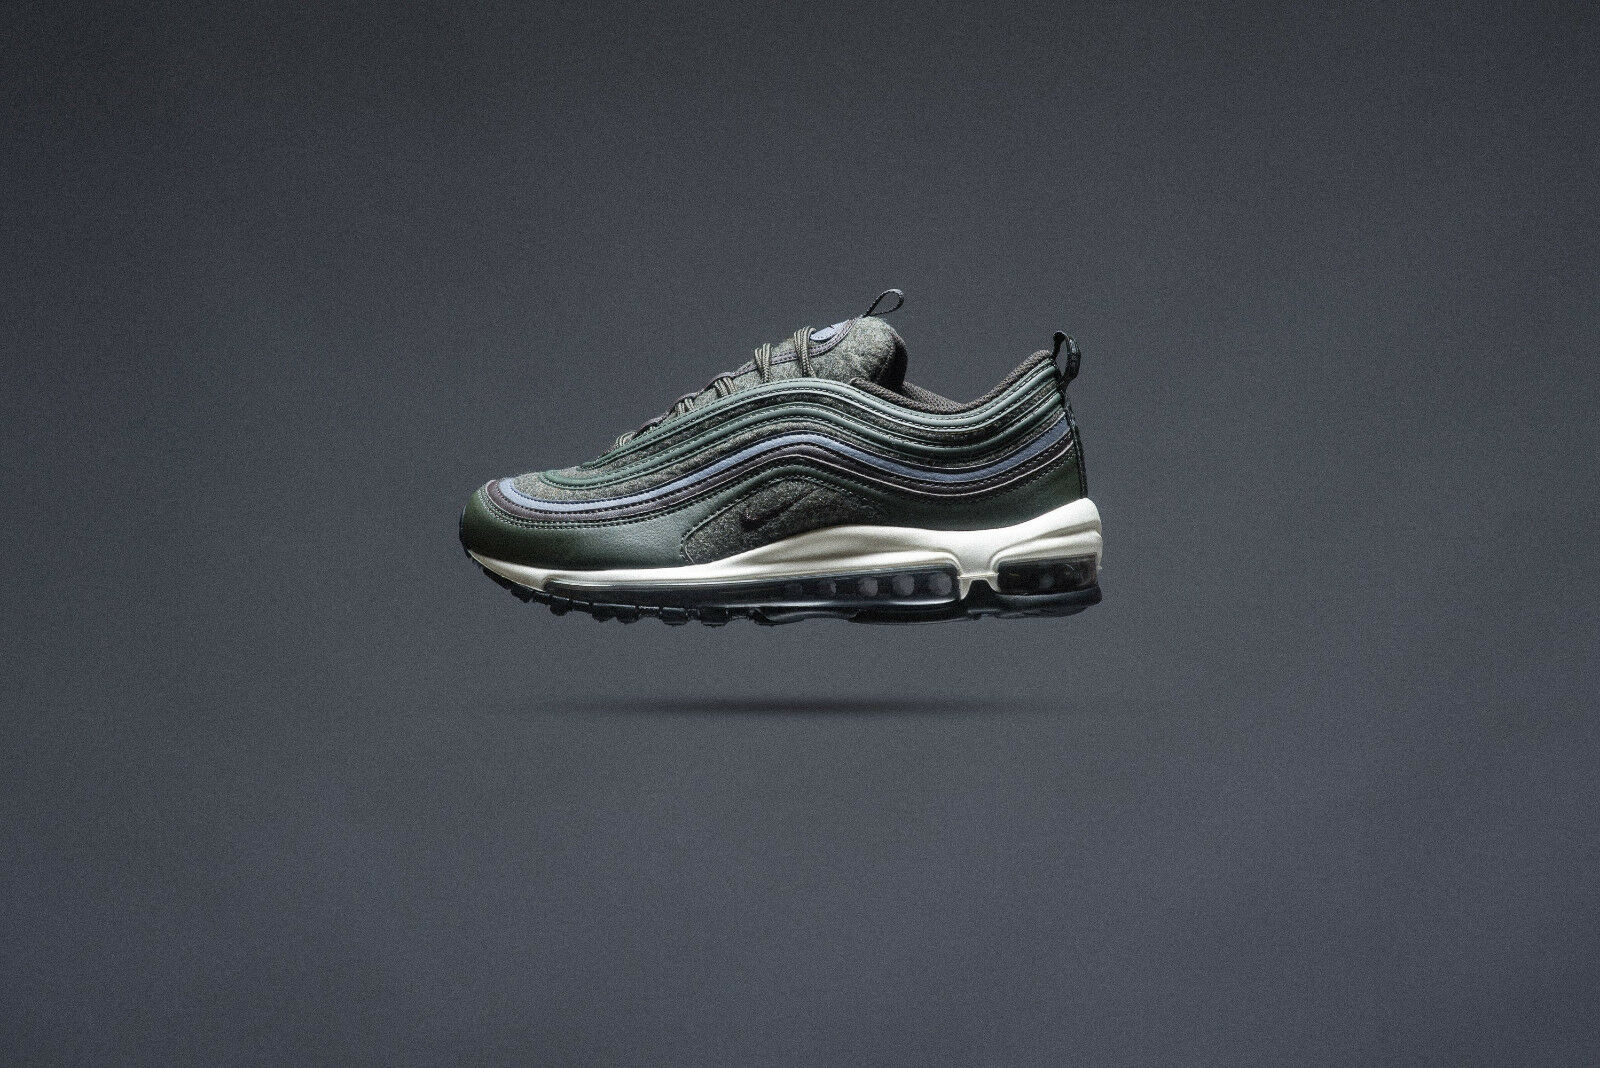 Nike Air Max 97 Sequoia Premium Sequoia 97 velours marron uk11 84bfb9